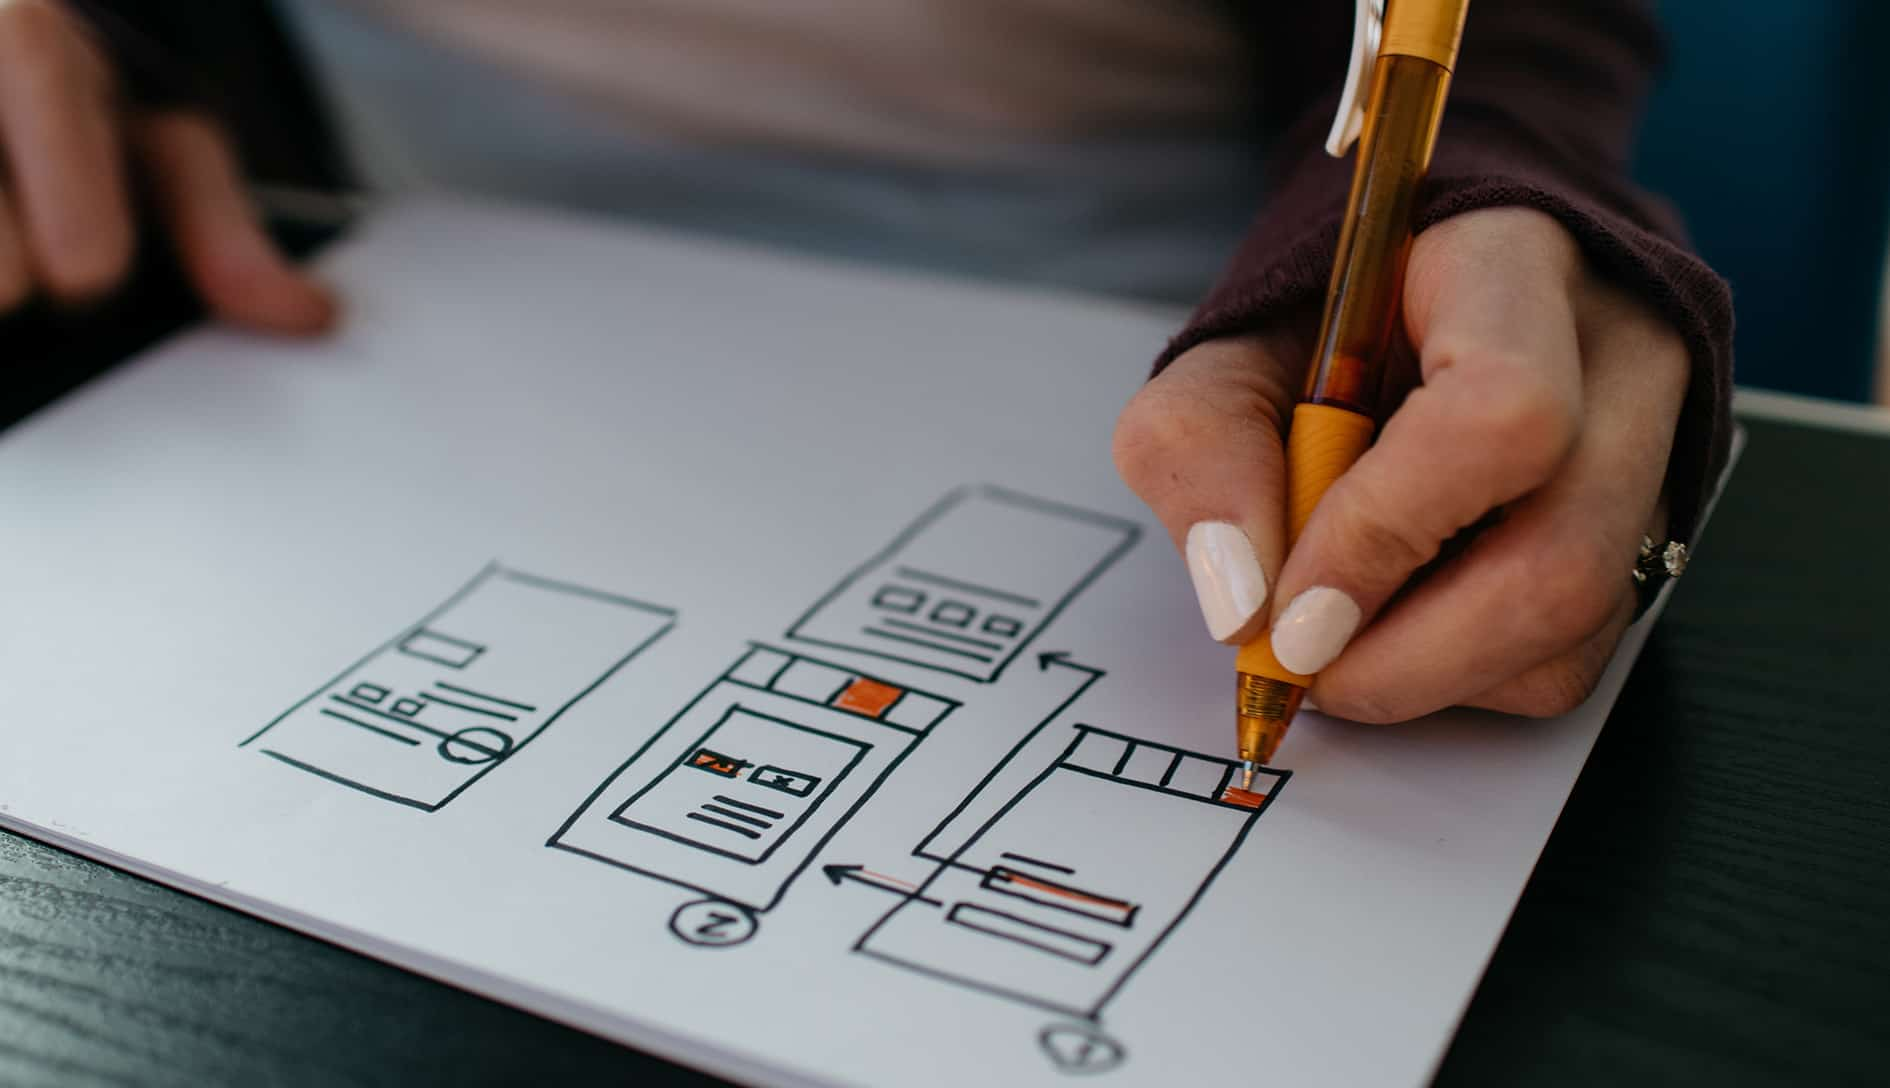 A hand holding a pen drawing mobile app designs for e-commerce on sheet of paper.